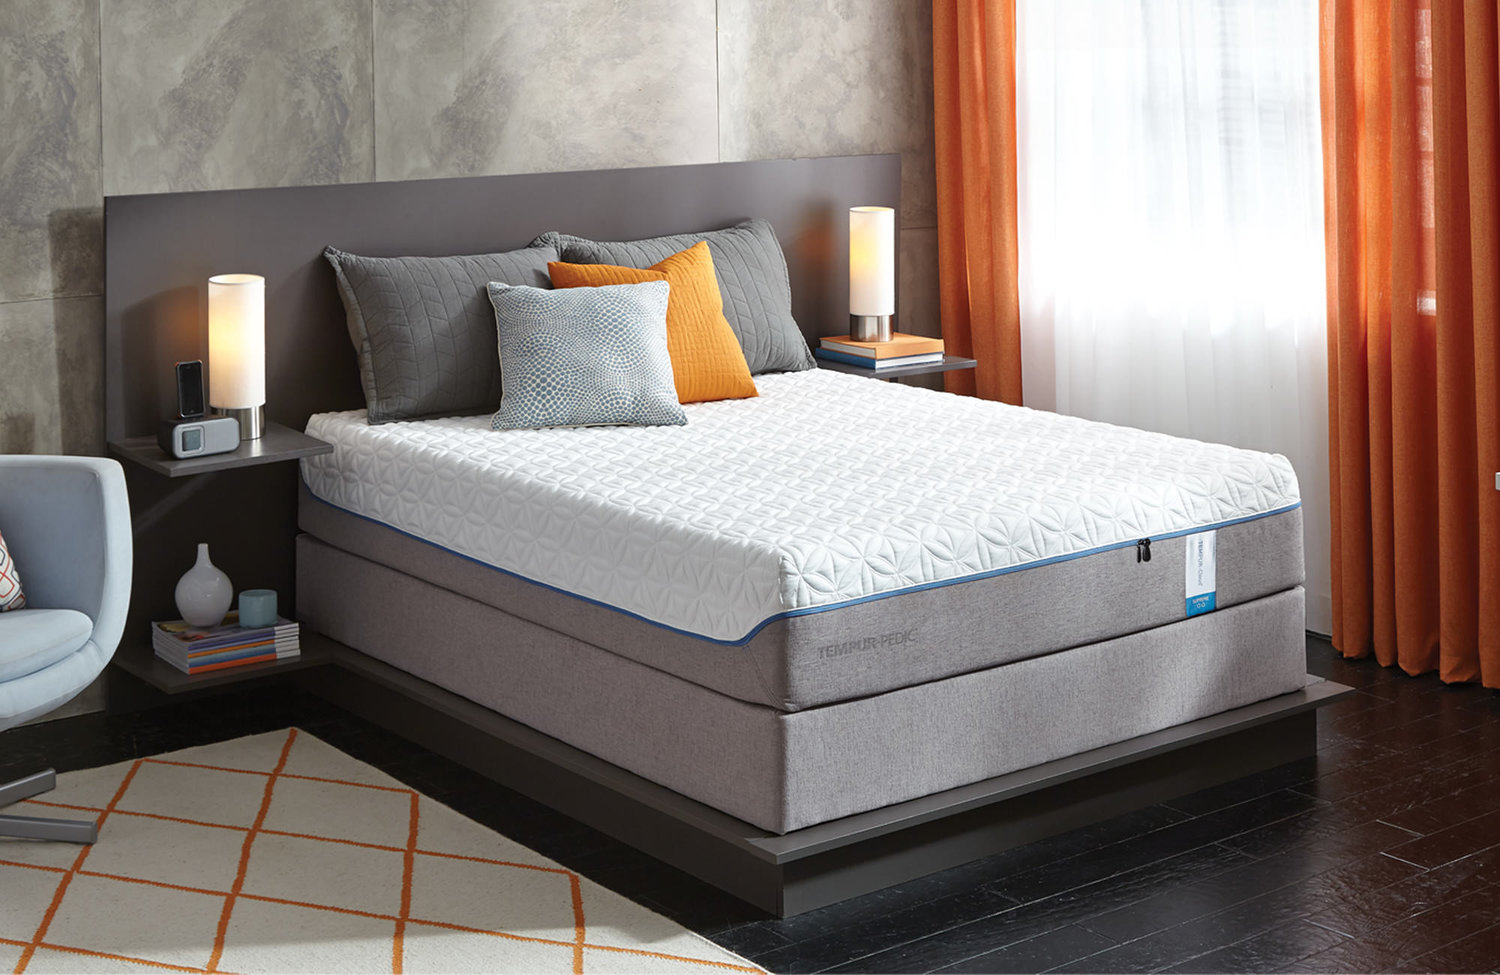 mattress b back productdetail mattresses spring malaysia saver sealy avalon